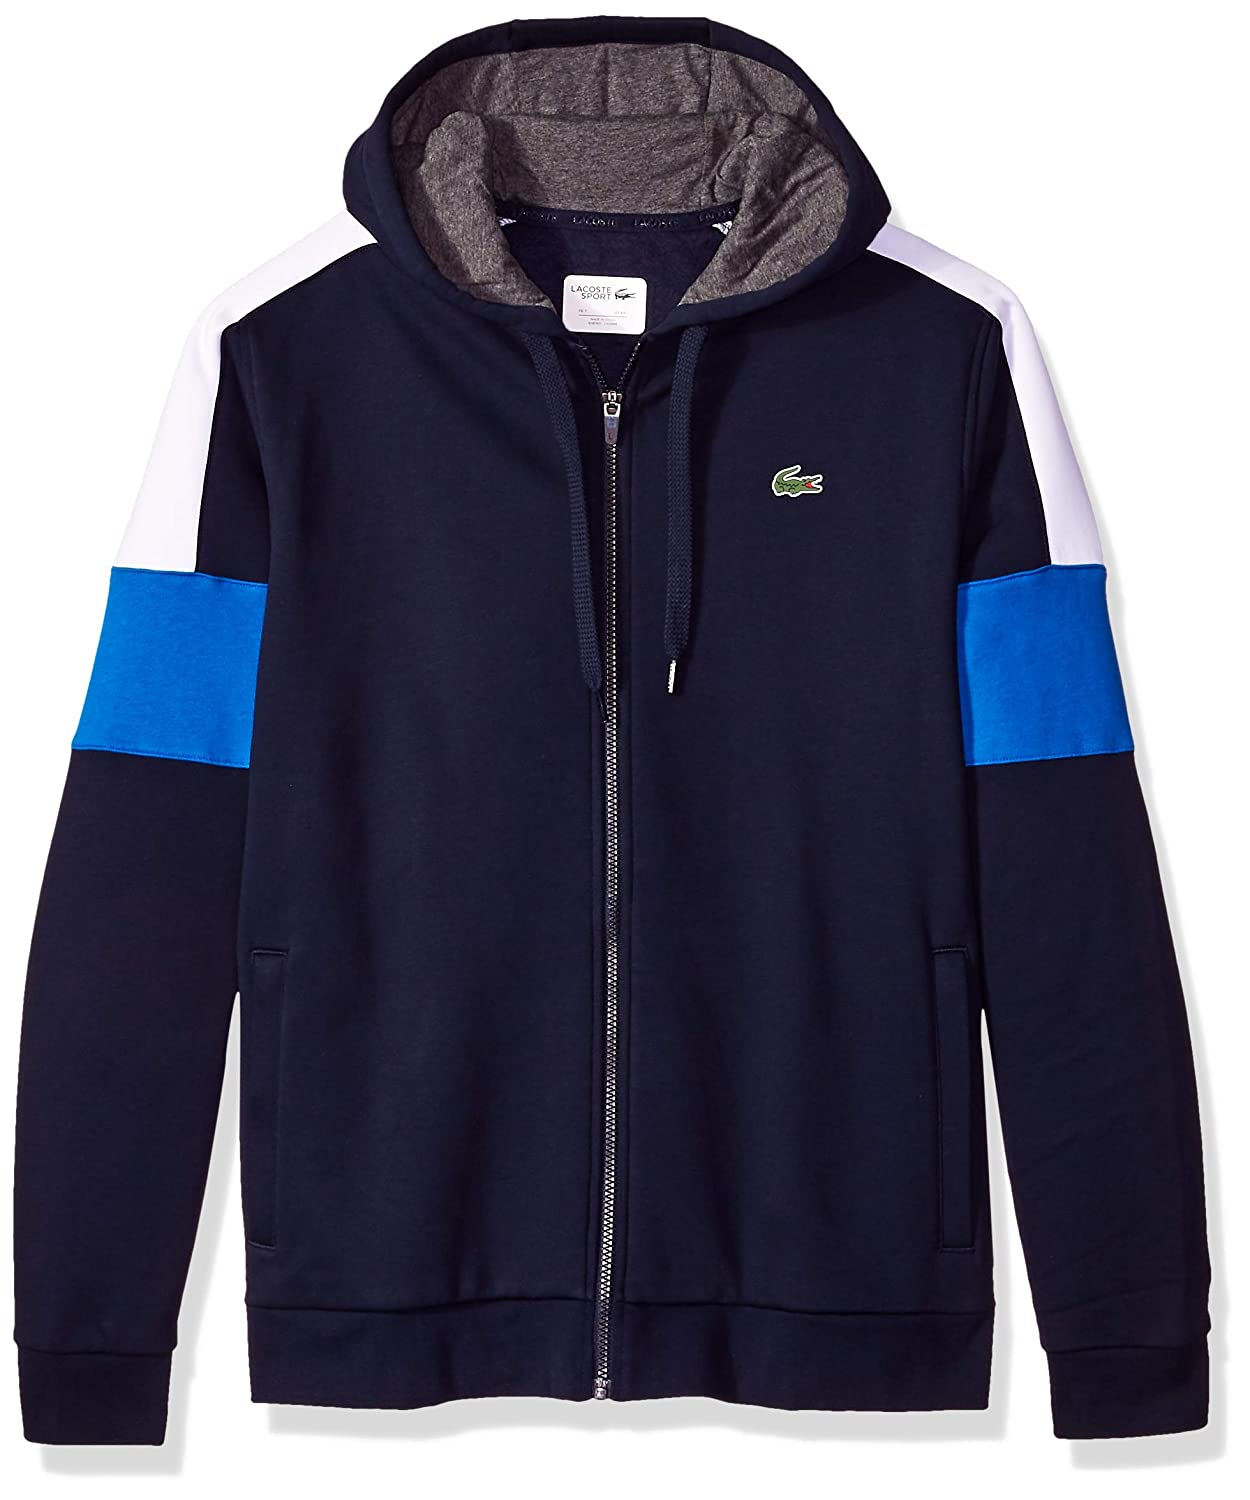 da35832c0da054 Amazon.com  Lacoste Men s Mixed Media Colorblock Hooded Sweatshirt  Clothing